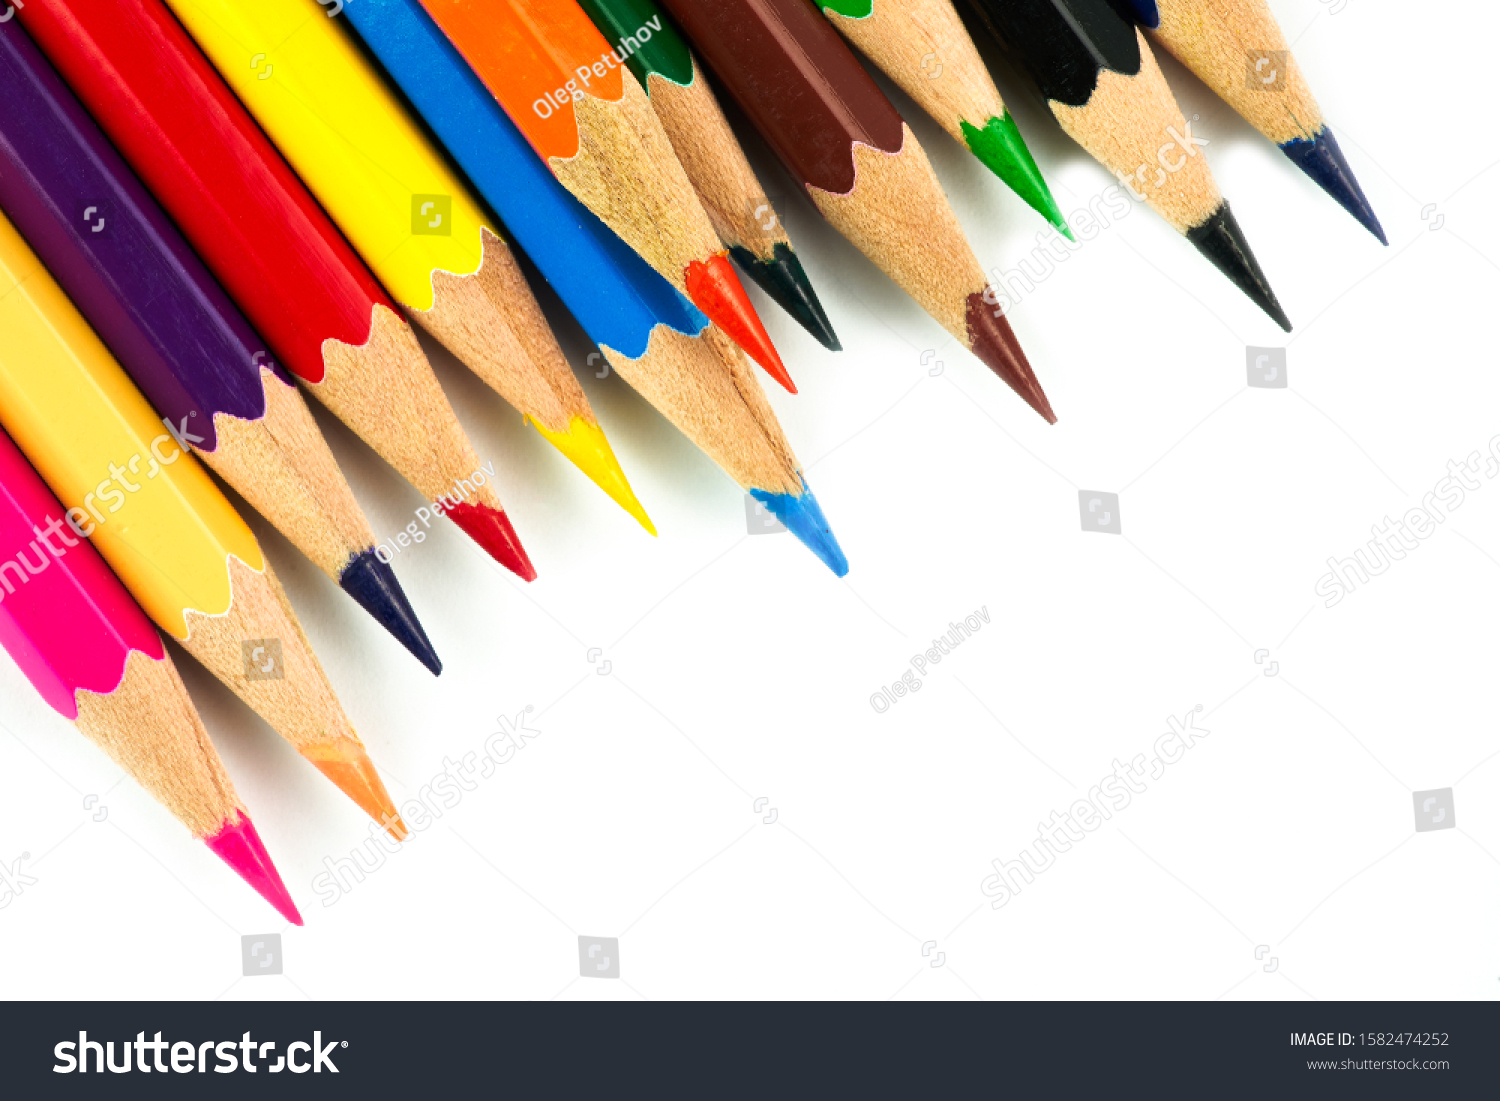 Colored pencils background. Color pencils on white background. #1582474252